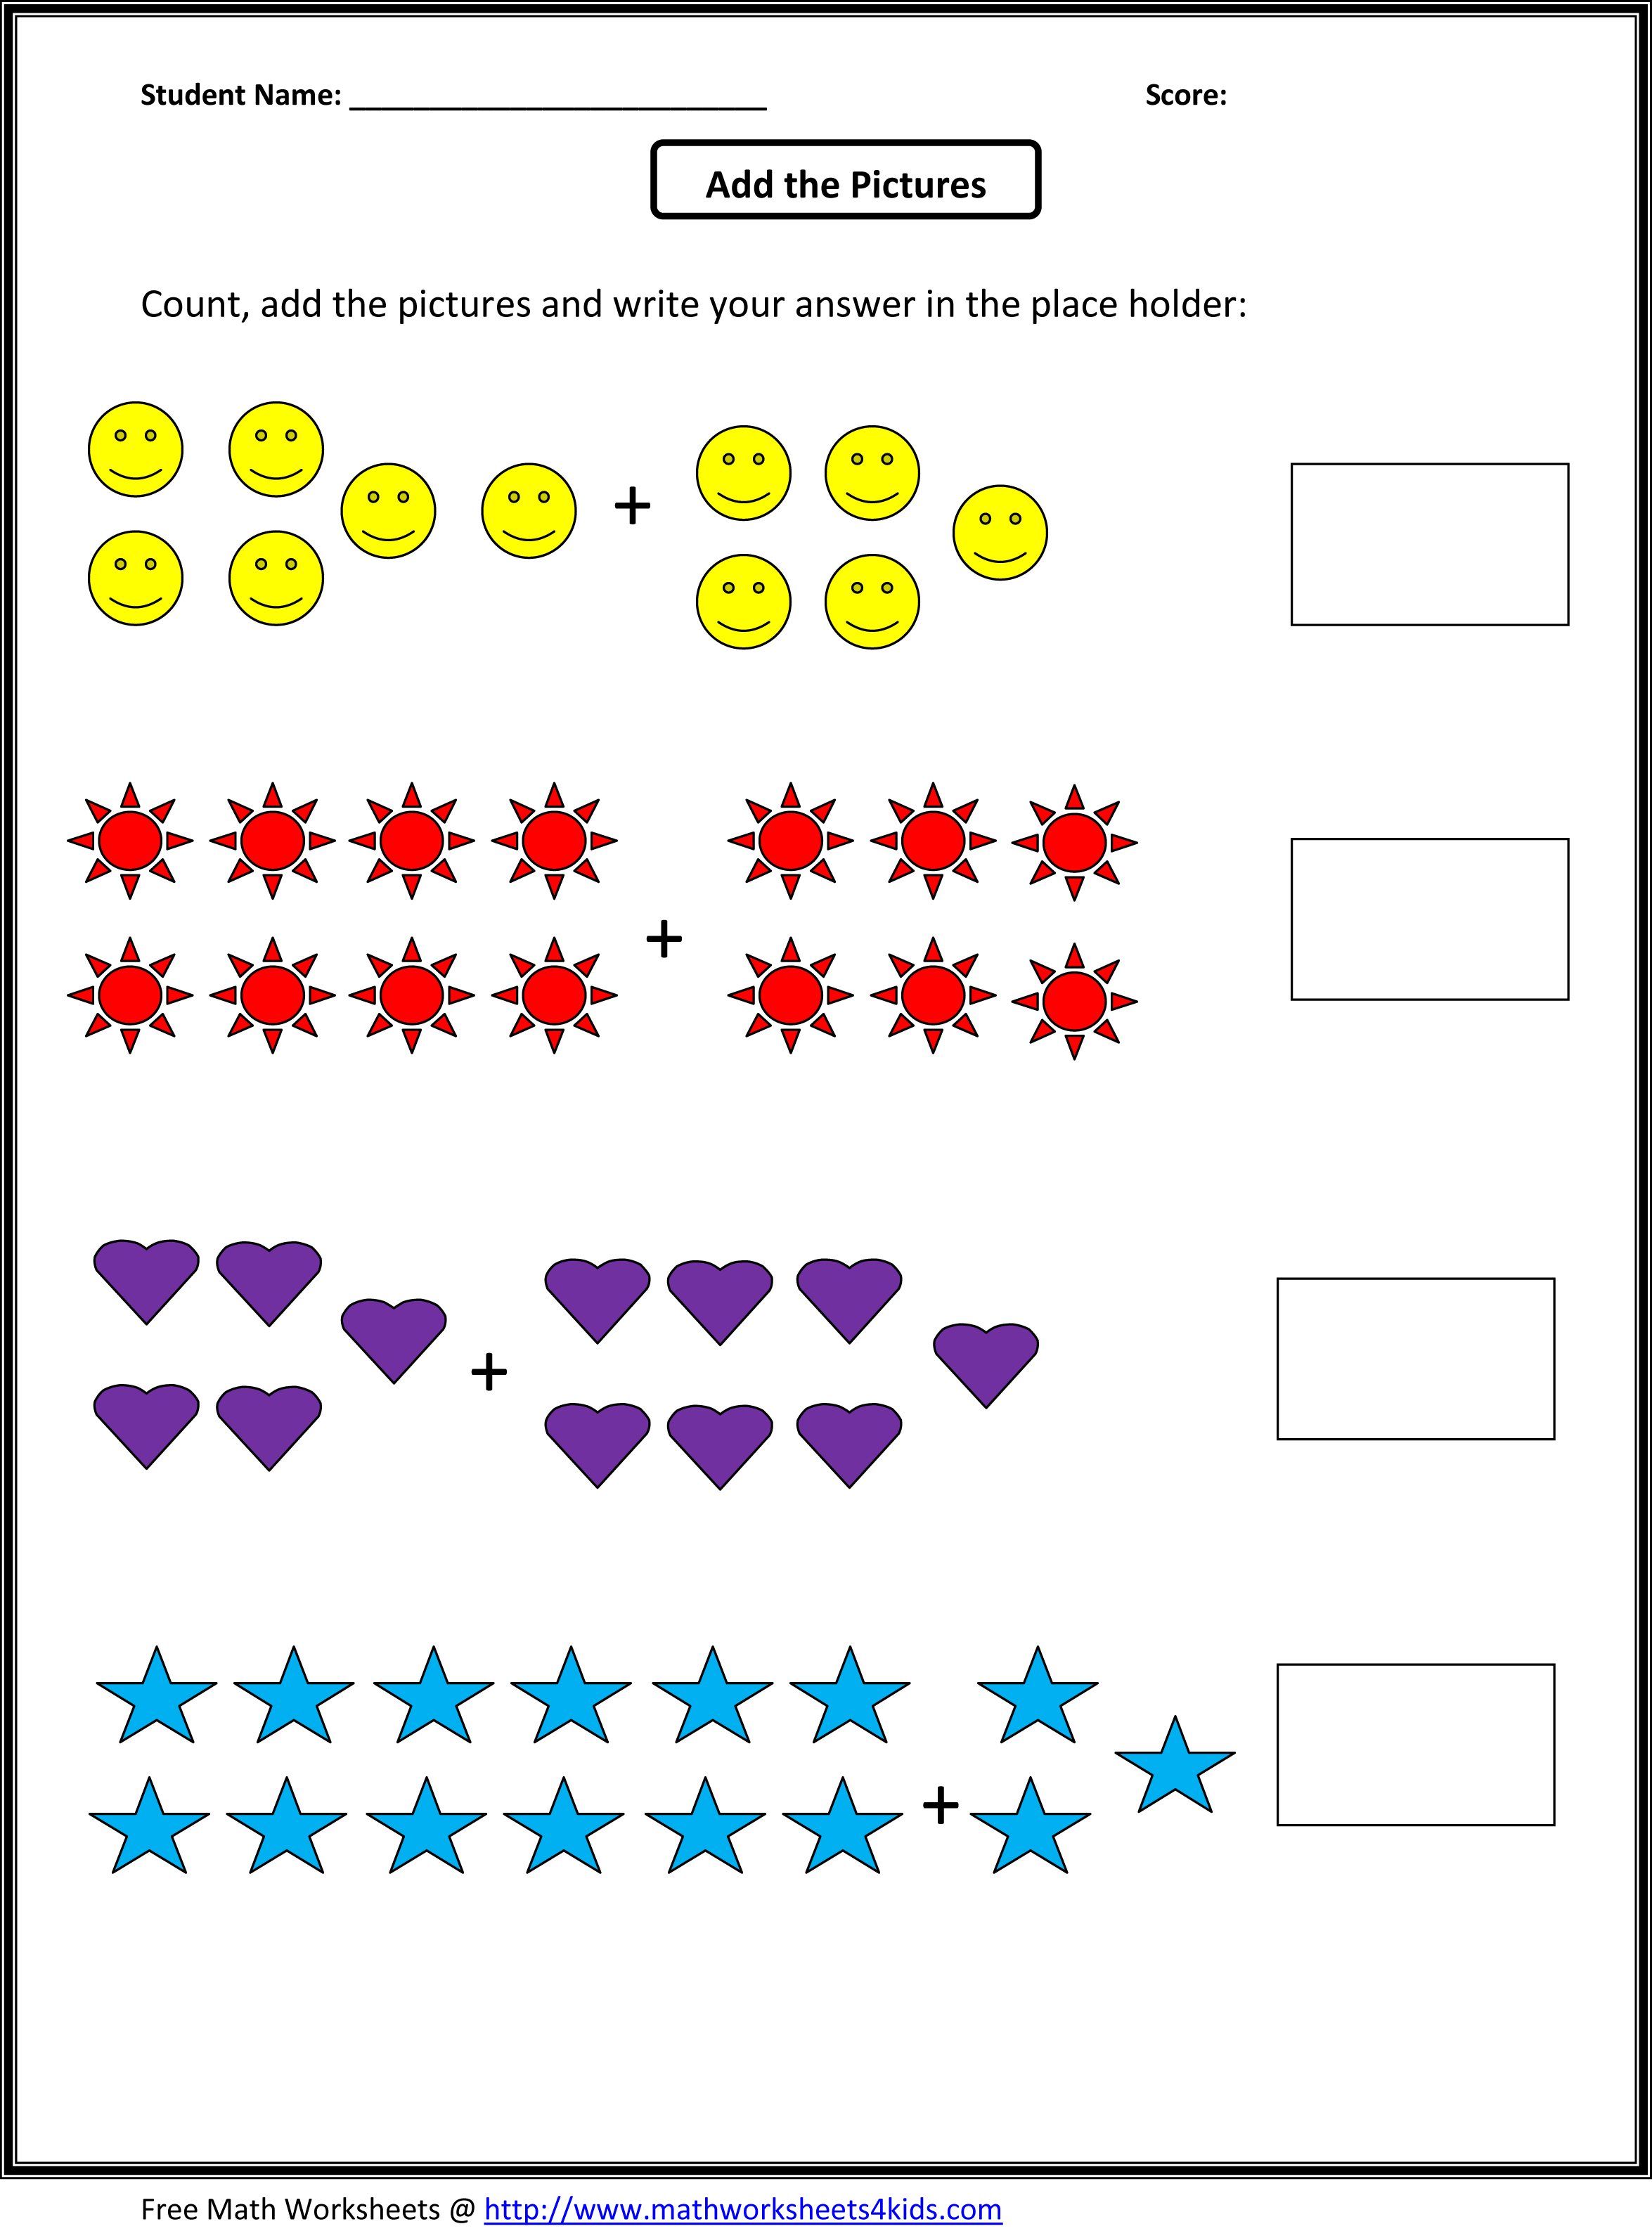 Weirdmailus  Pleasant Grade  Maths Worksheet  Reocurent With Interesting Math Worksheets For St Grade Free  Reocurent With Attractive Equations And Inequalities Worksheets Also Parts Of The Face Worksheet For Kindergarten In Addition Scatter Diagram Worksheet And Speech Homework Worksheets As Well As Metaphors Worksheets Additionally Prometheus Gives Fire To Man Worksheet Answers From Reocurentcom With Weirdmailus  Interesting Grade  Maths Worksheet  Reocurent With Attractive Math Worksheets For St Grade Free  Reocurent And Pleasant Equations And Inequalities Worksheets Also Parts Of The Face Worksheet For Kindergarten In Addition Scatter Diagram Worksheet From Reocurentcom